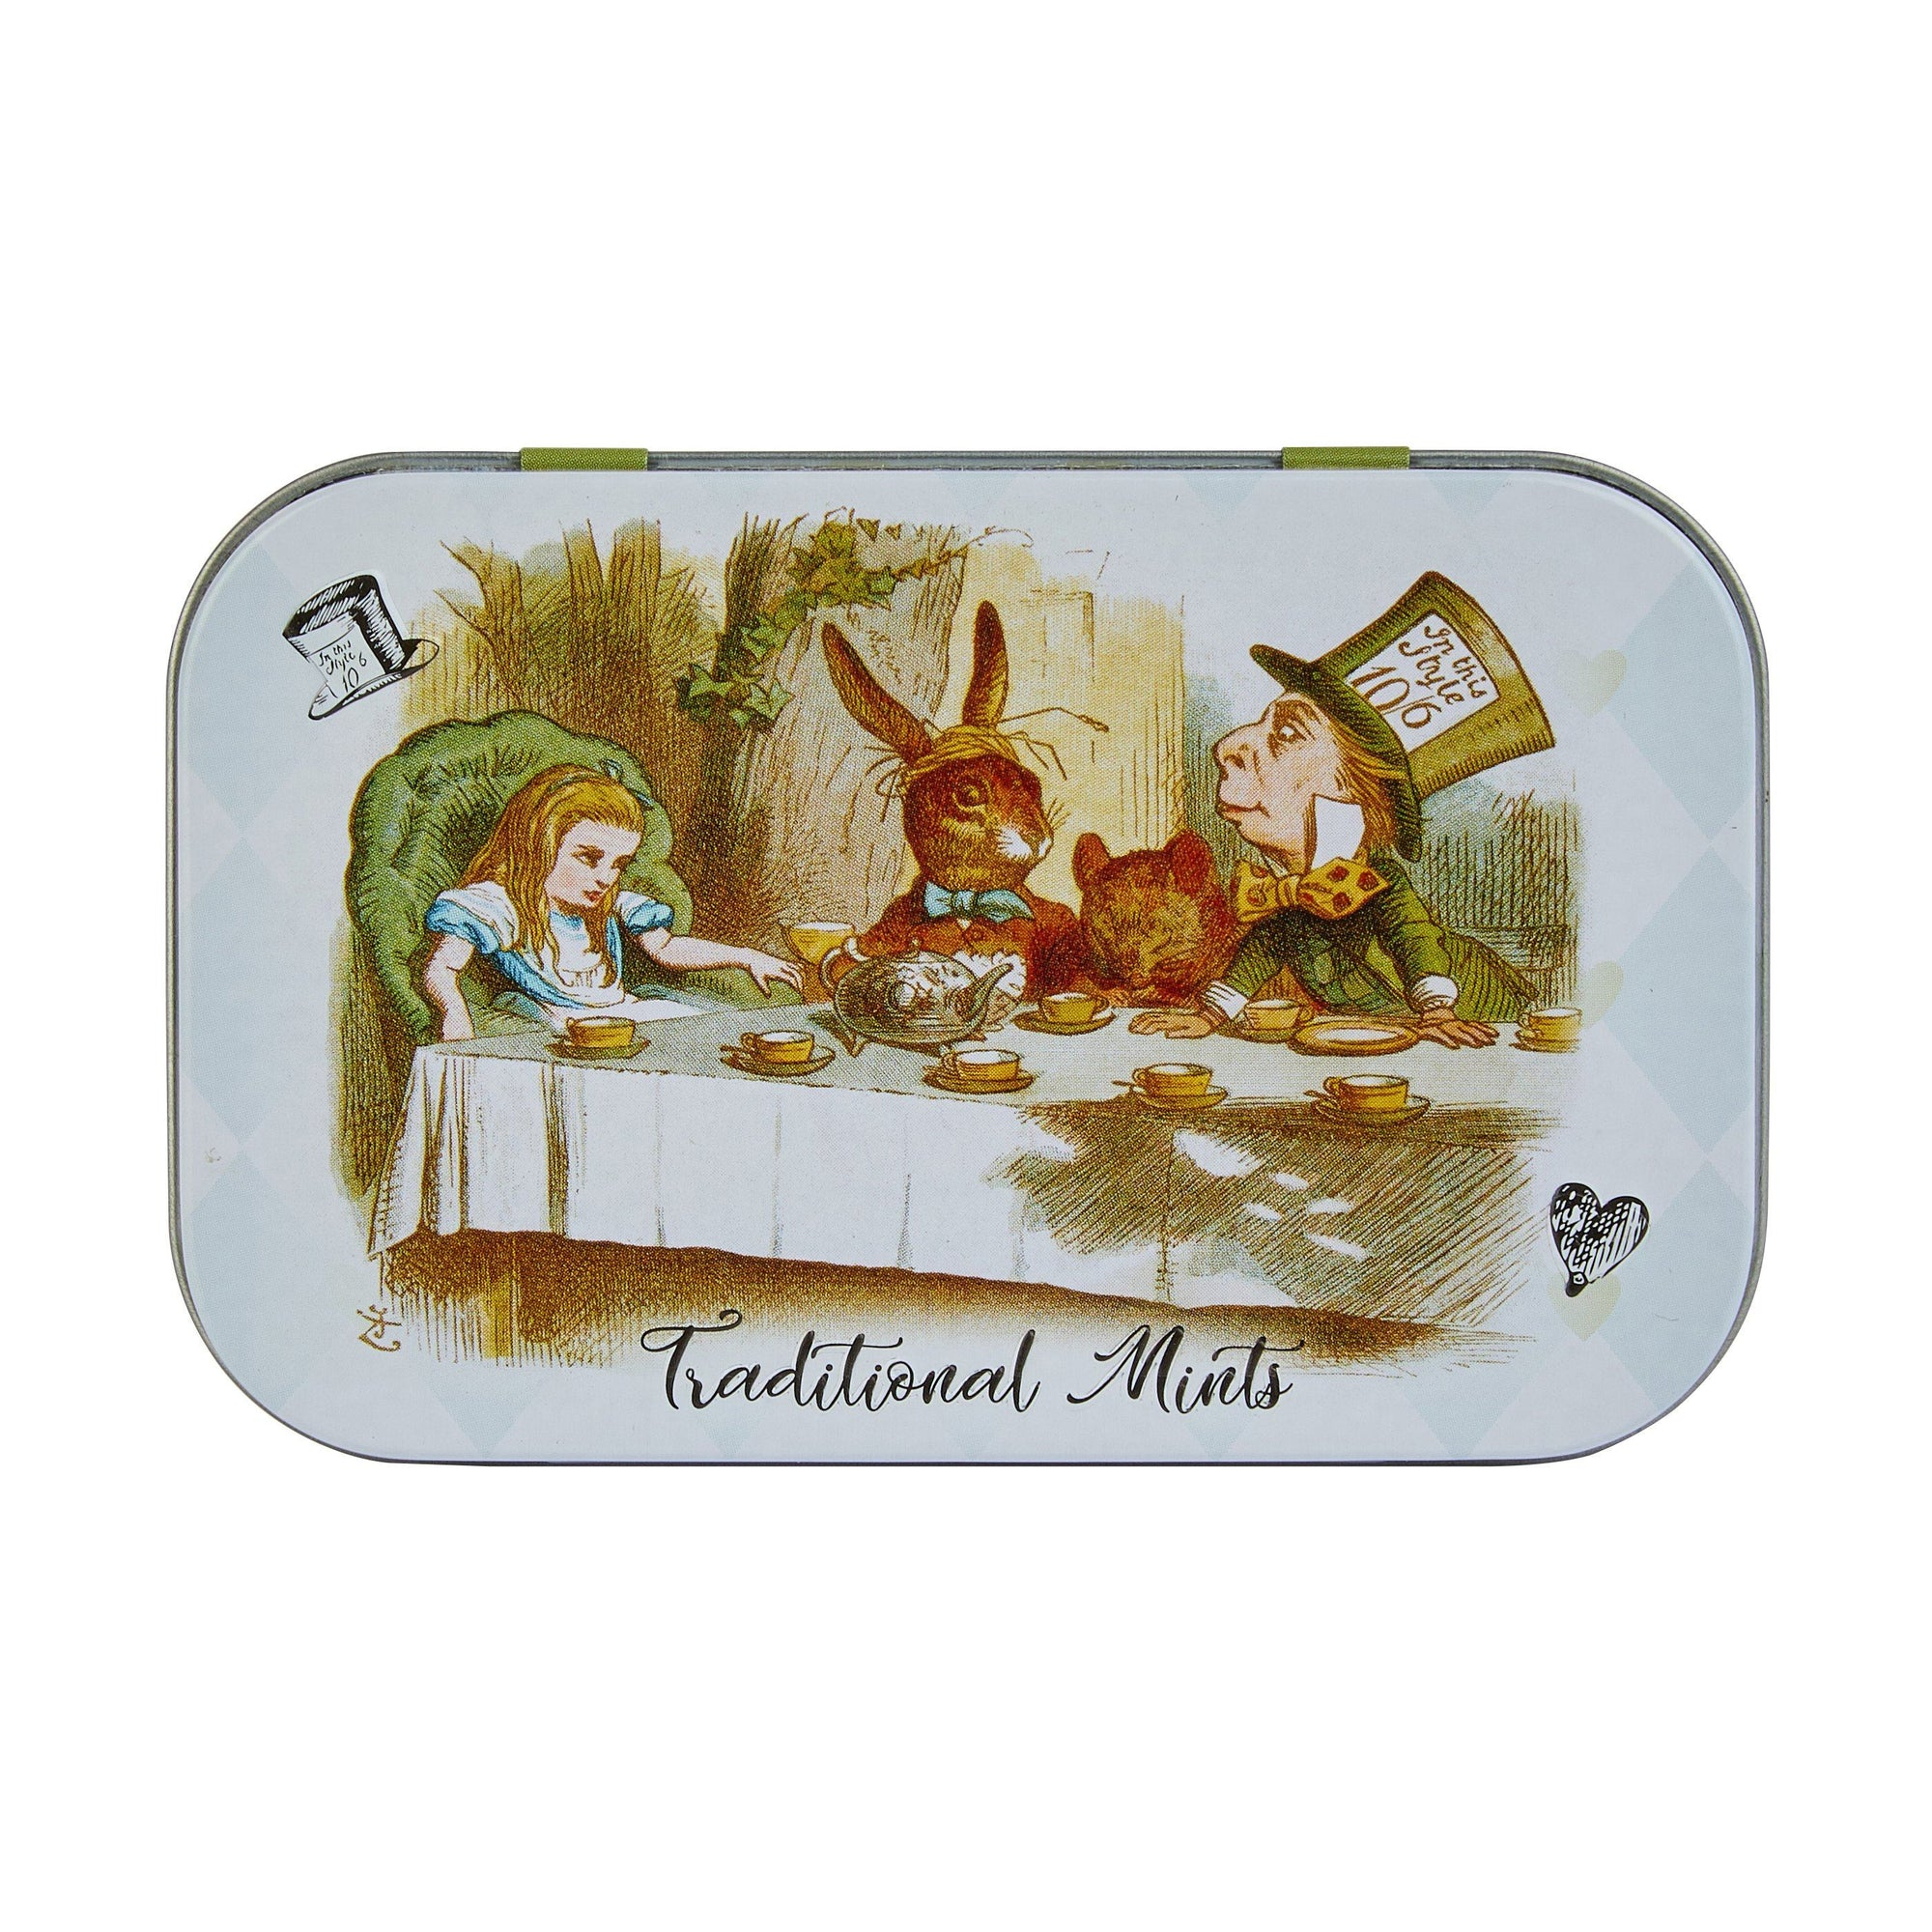 Alice in Wonderland Sugar-Free Pocket Mints Tin 35g Mints New English Teas